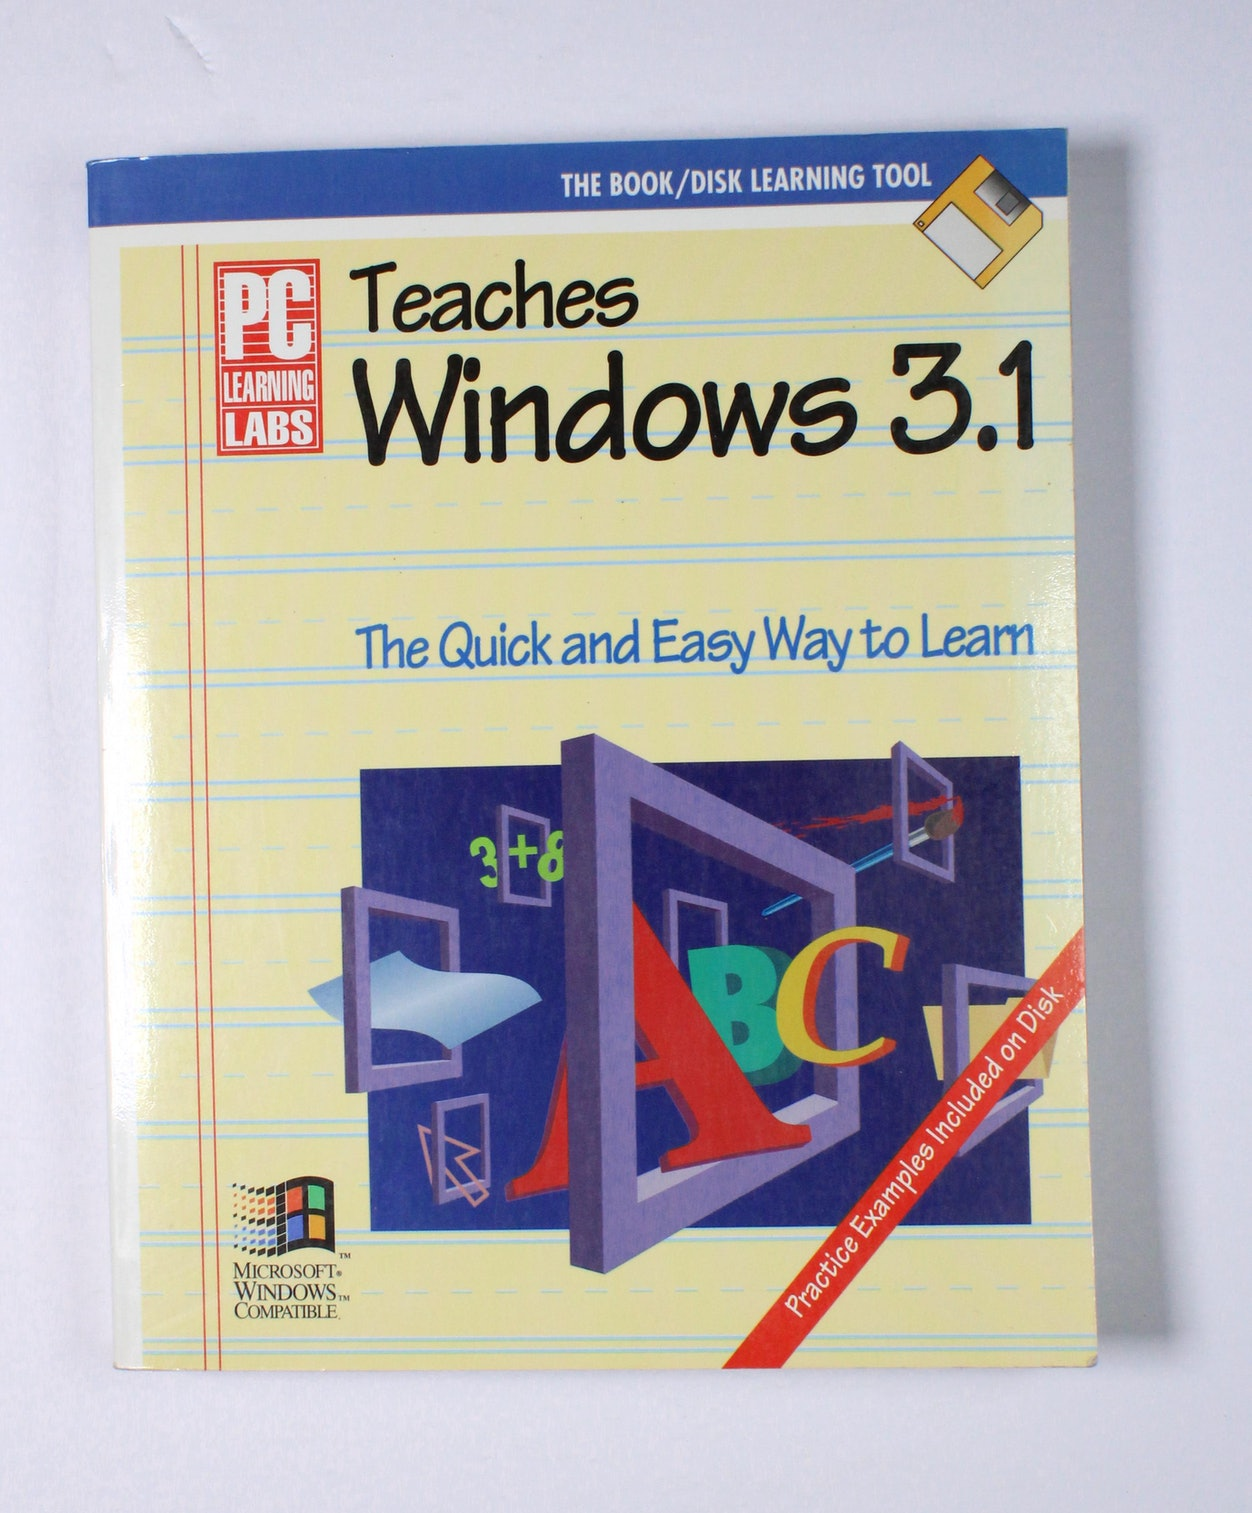 PC Learning Labs Teaches Windows 3.1